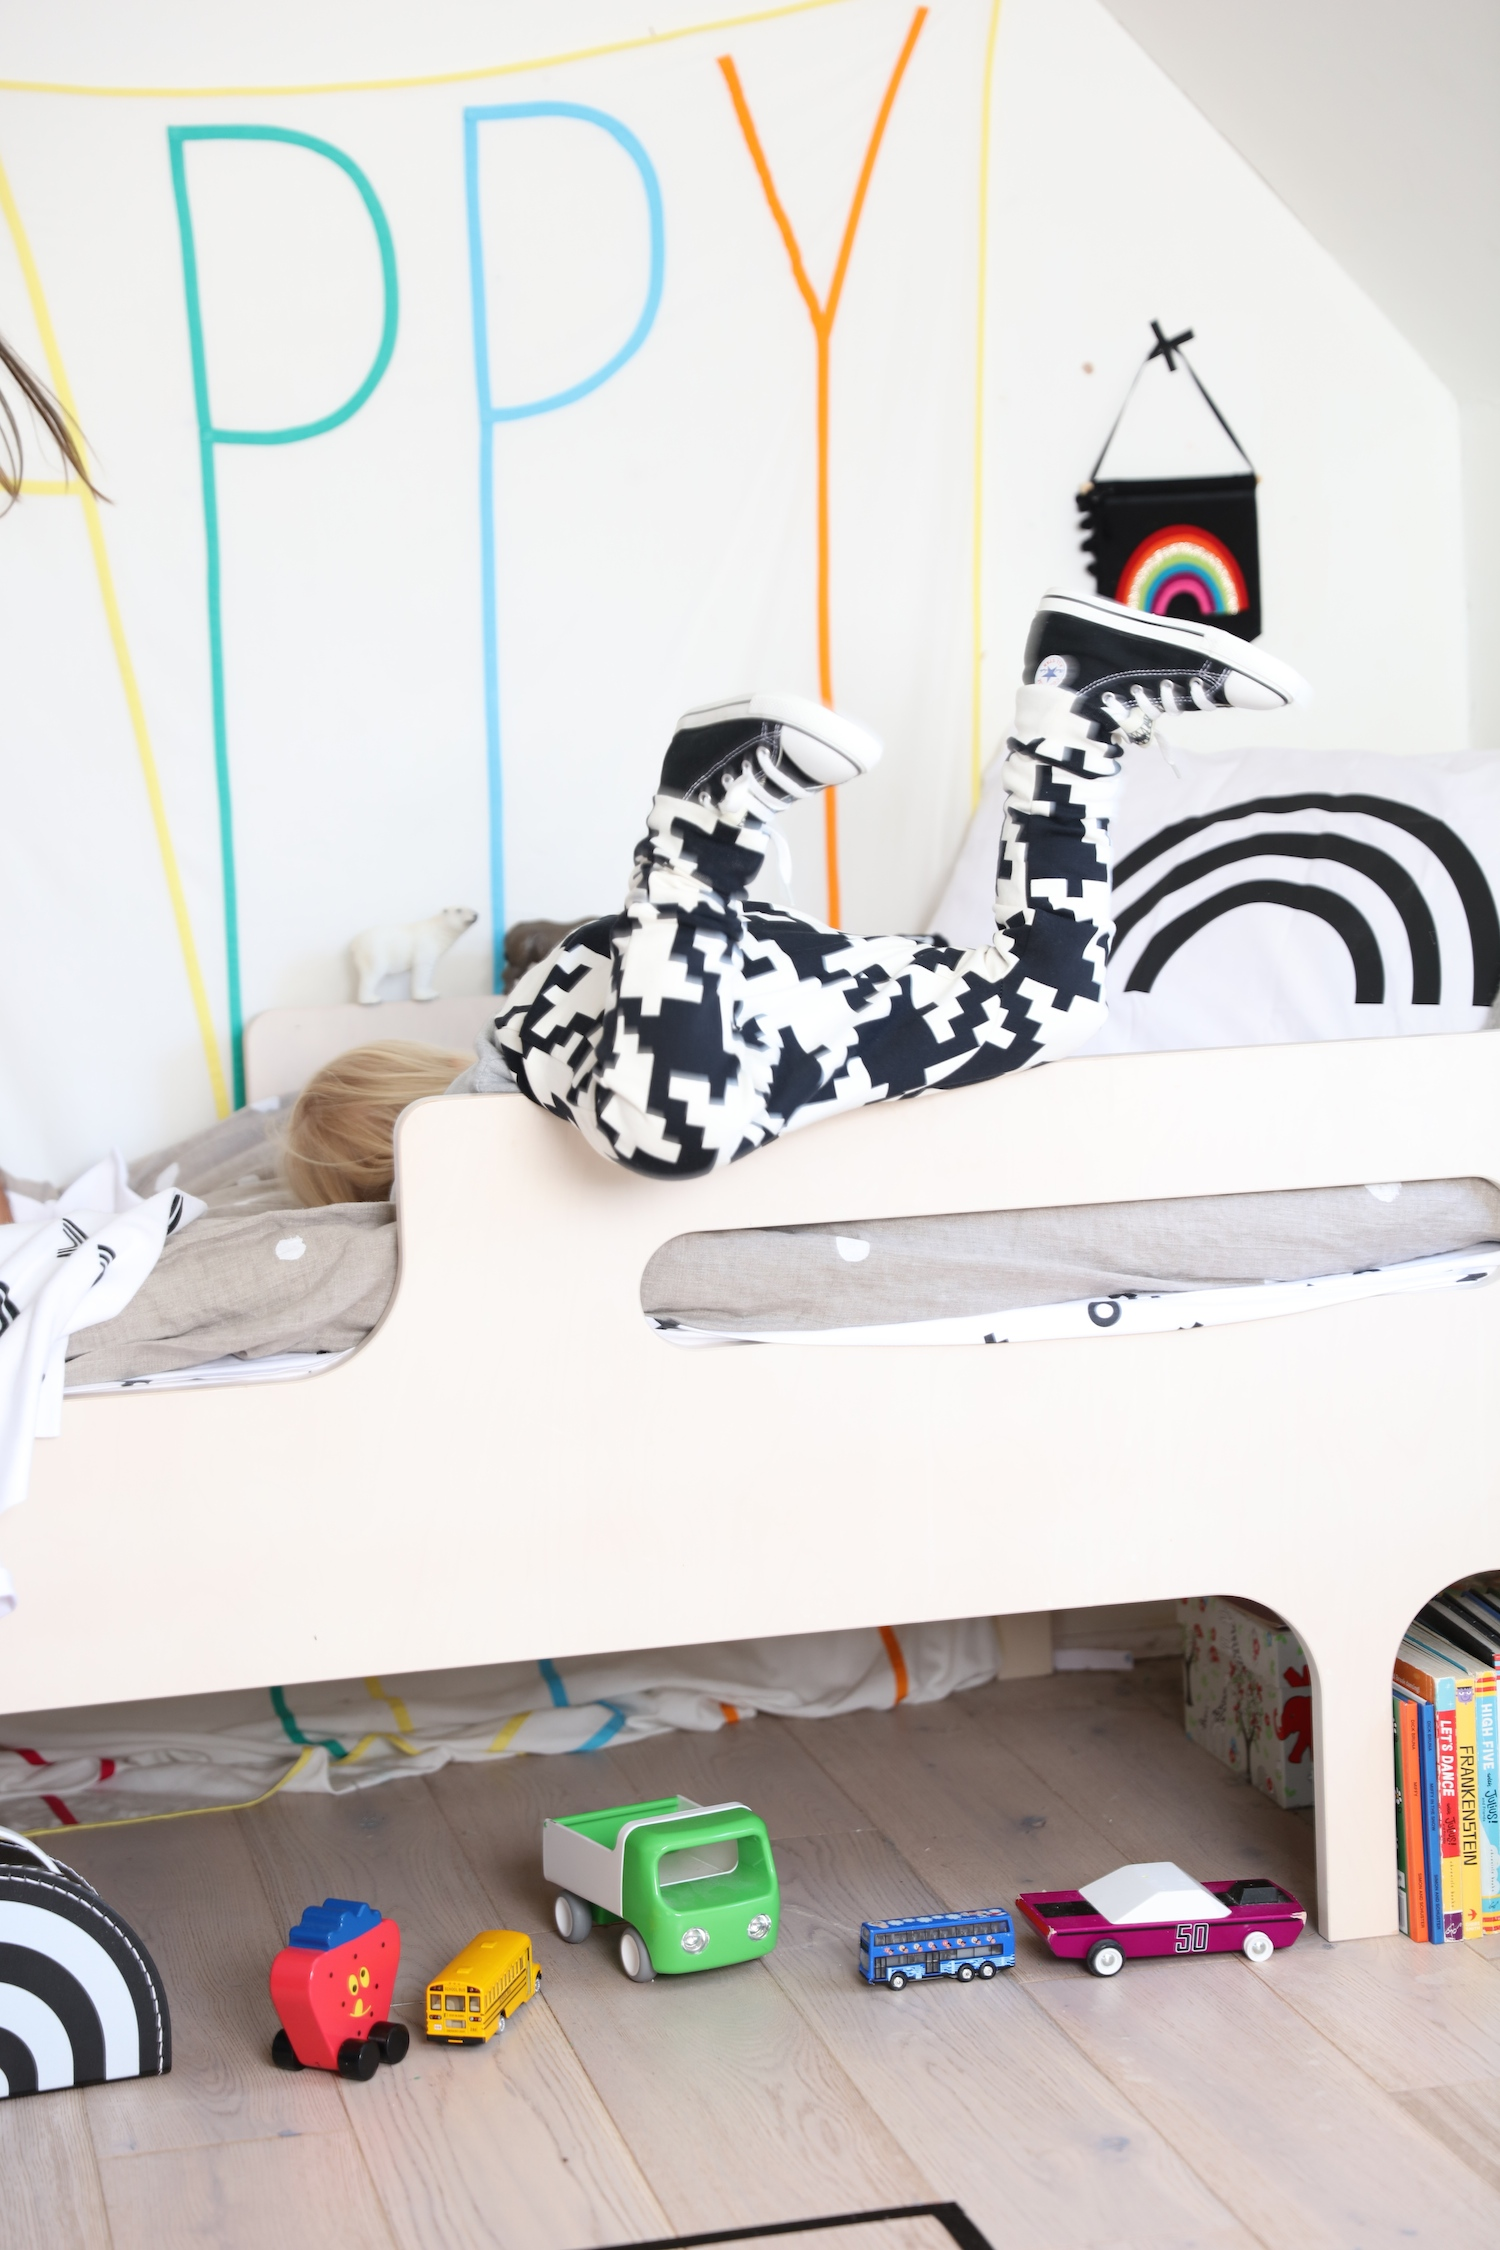 Little_man_happy_aw16_tainbow_kids_room